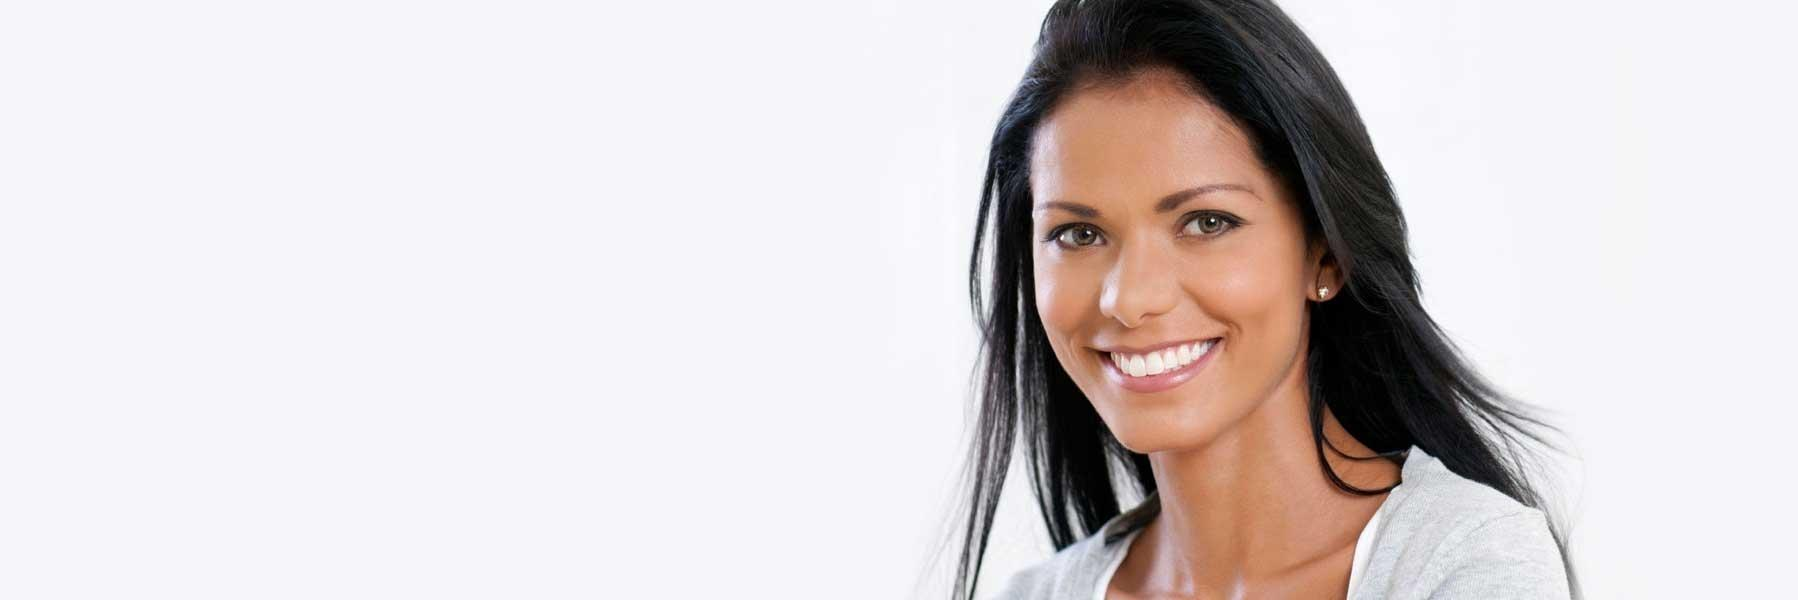 woman smiling | Dentist in Fairfax, VA